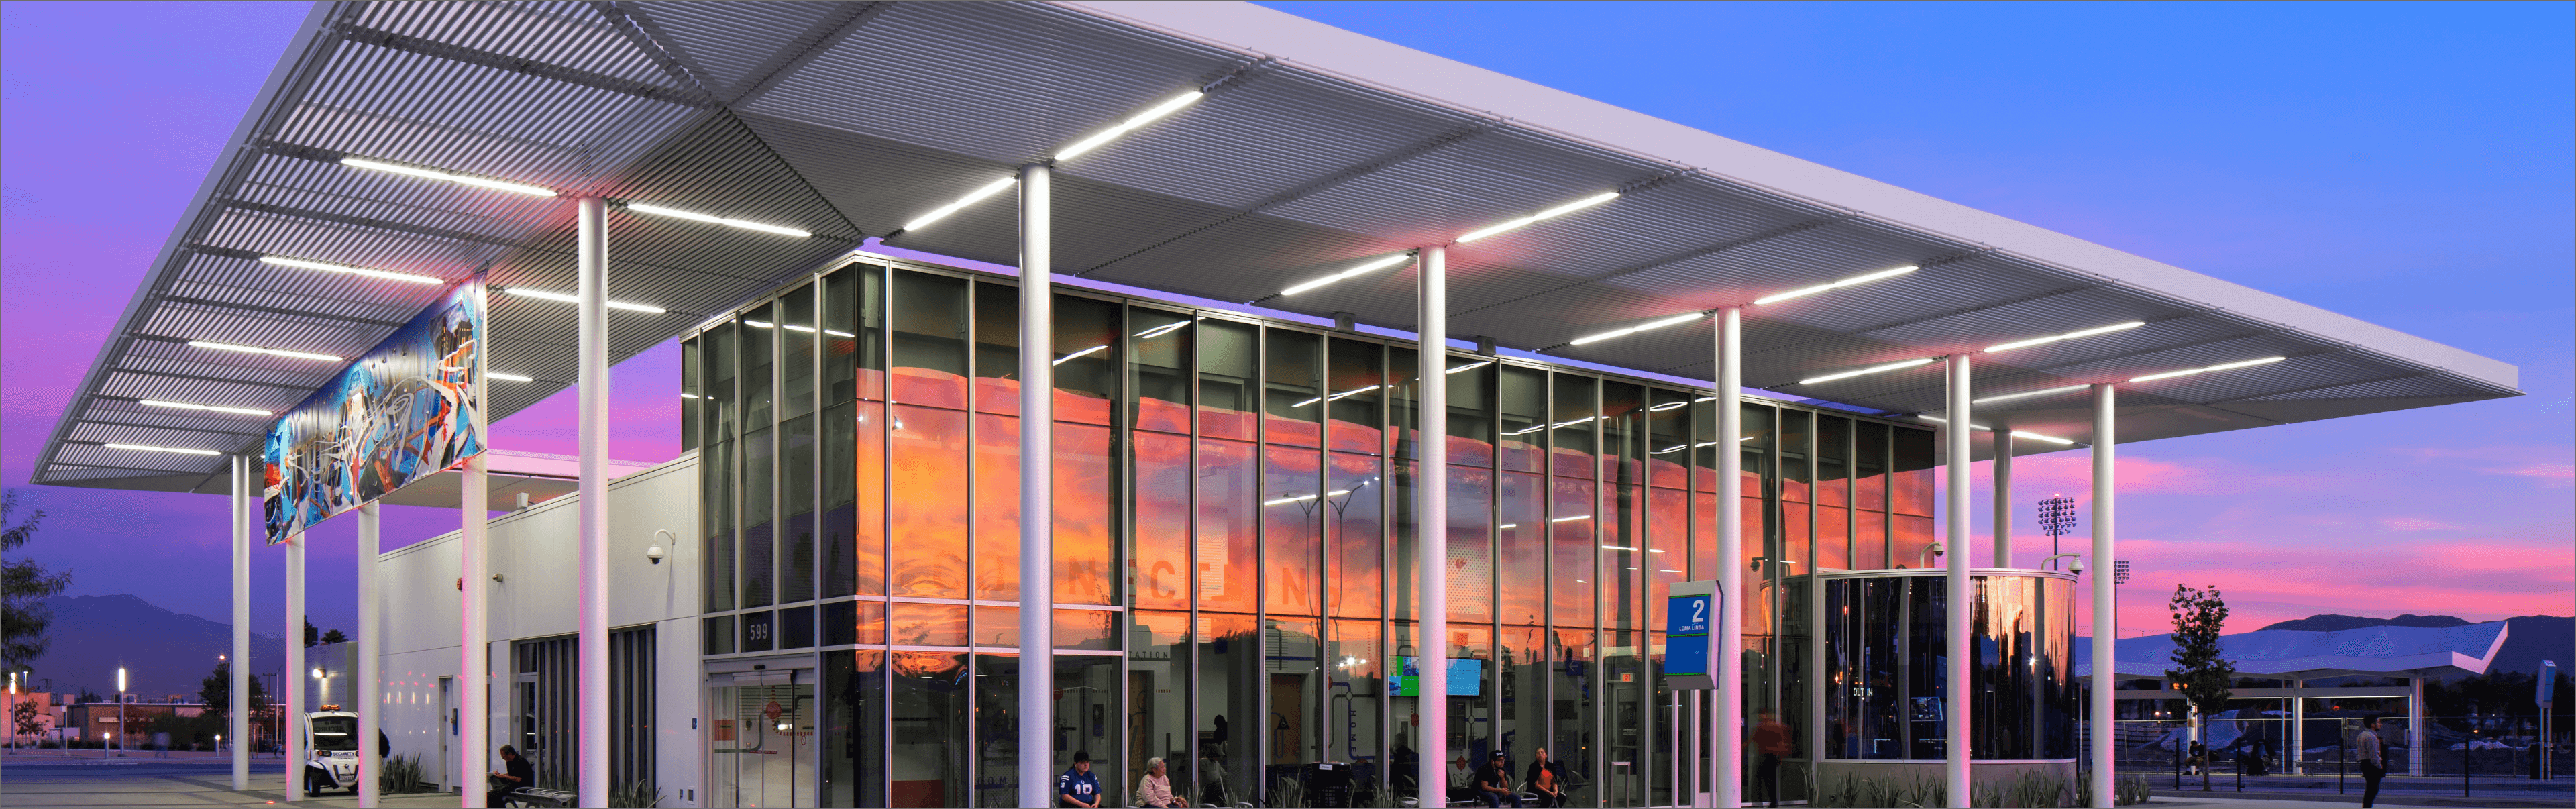 San Bernardino Transit Center at sunset